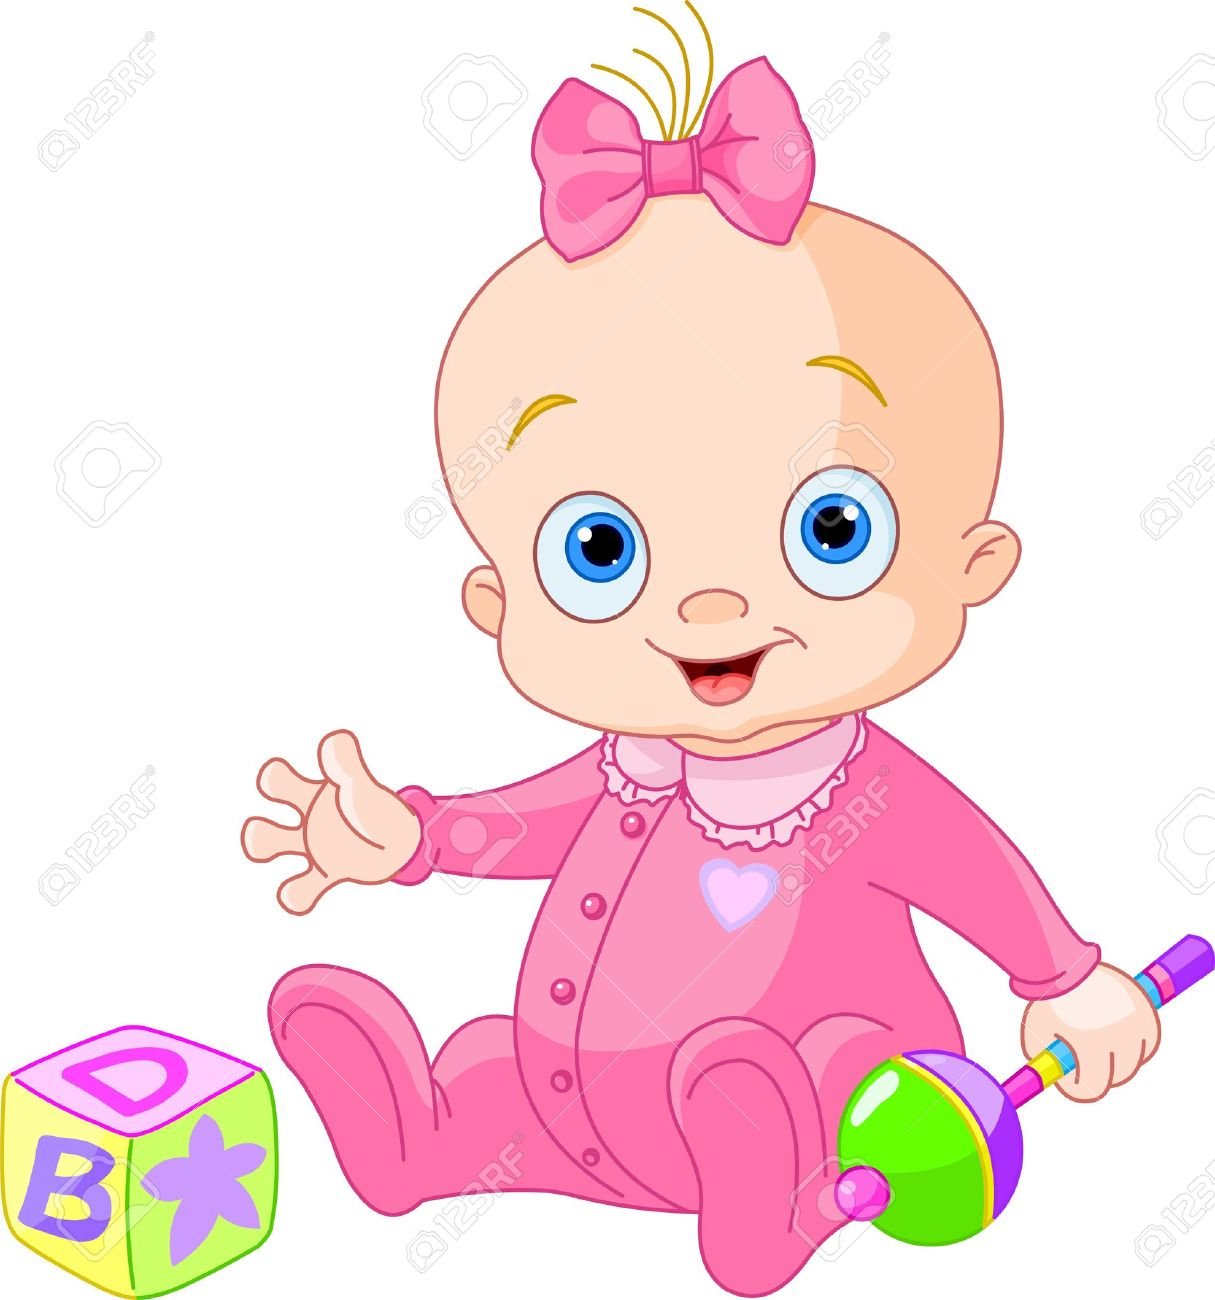 Baby Girl Playing With Rattle Royalty Free Cliparts Vectors And Stock Illustration Image 14080832